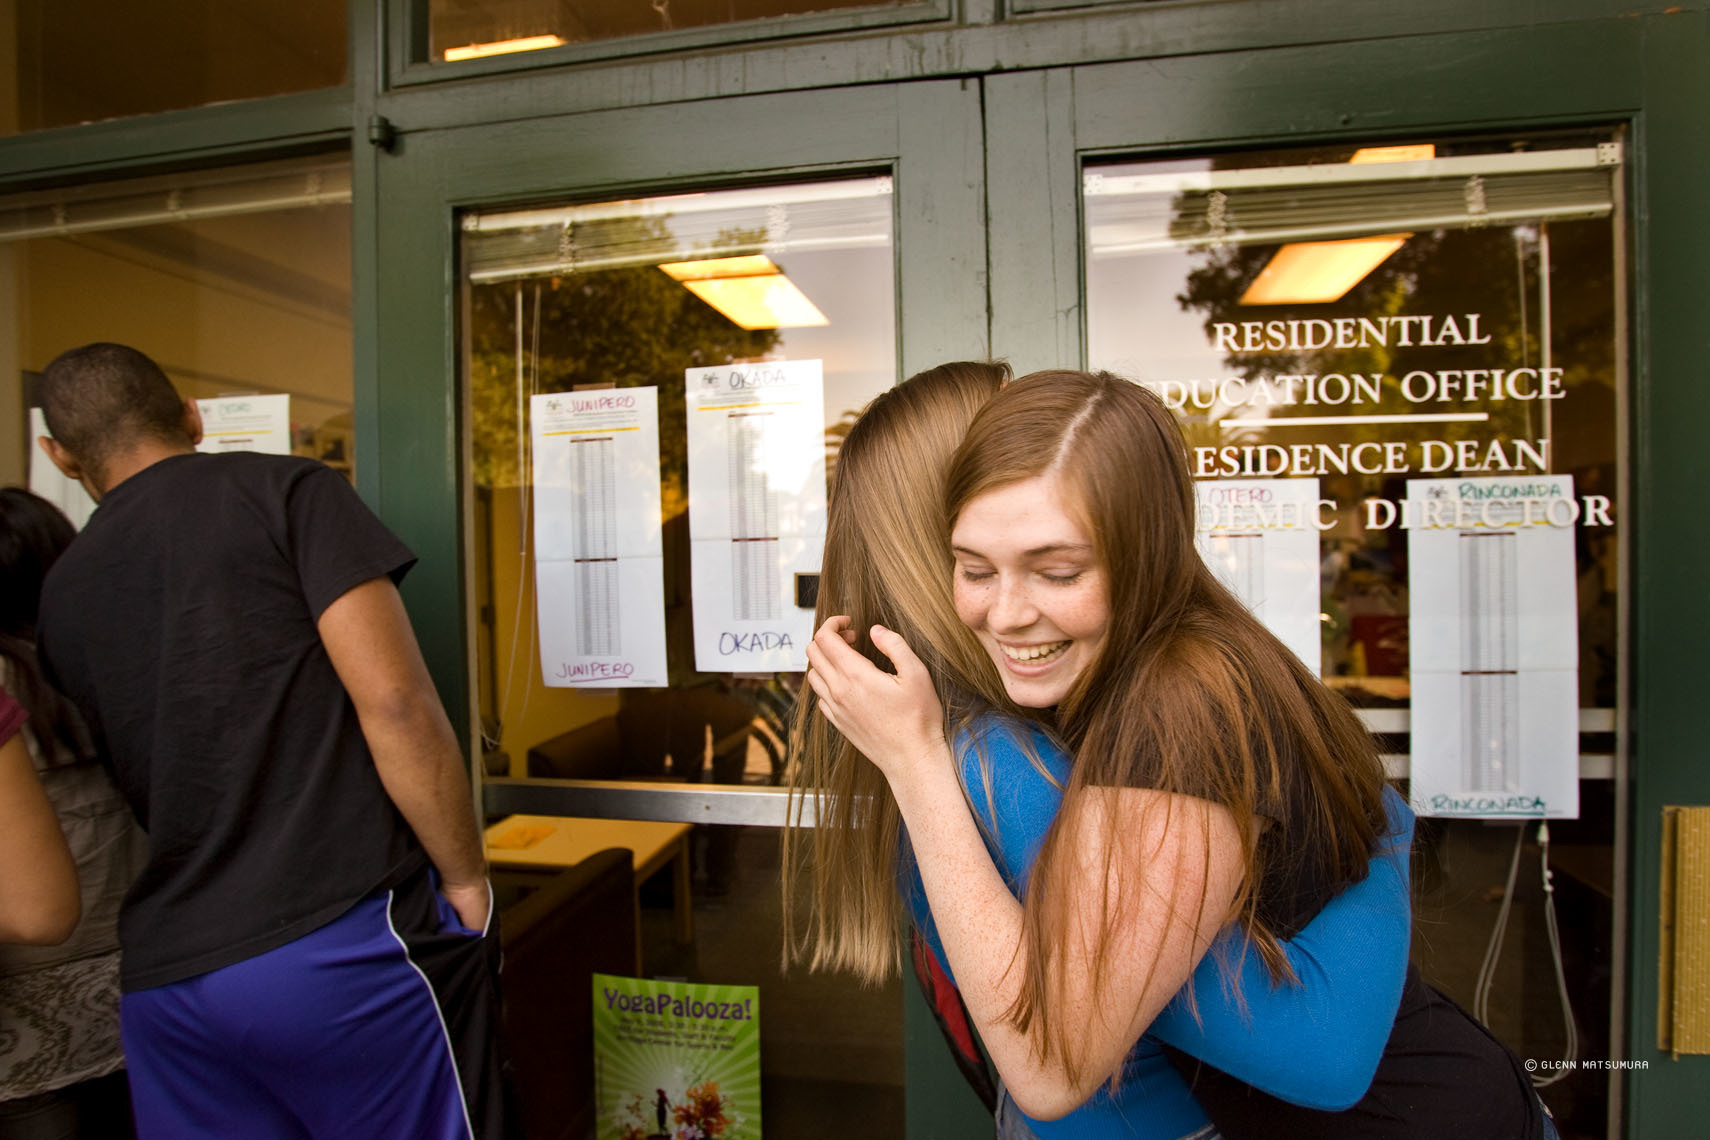 Students celebrating as the housing draw results are posted